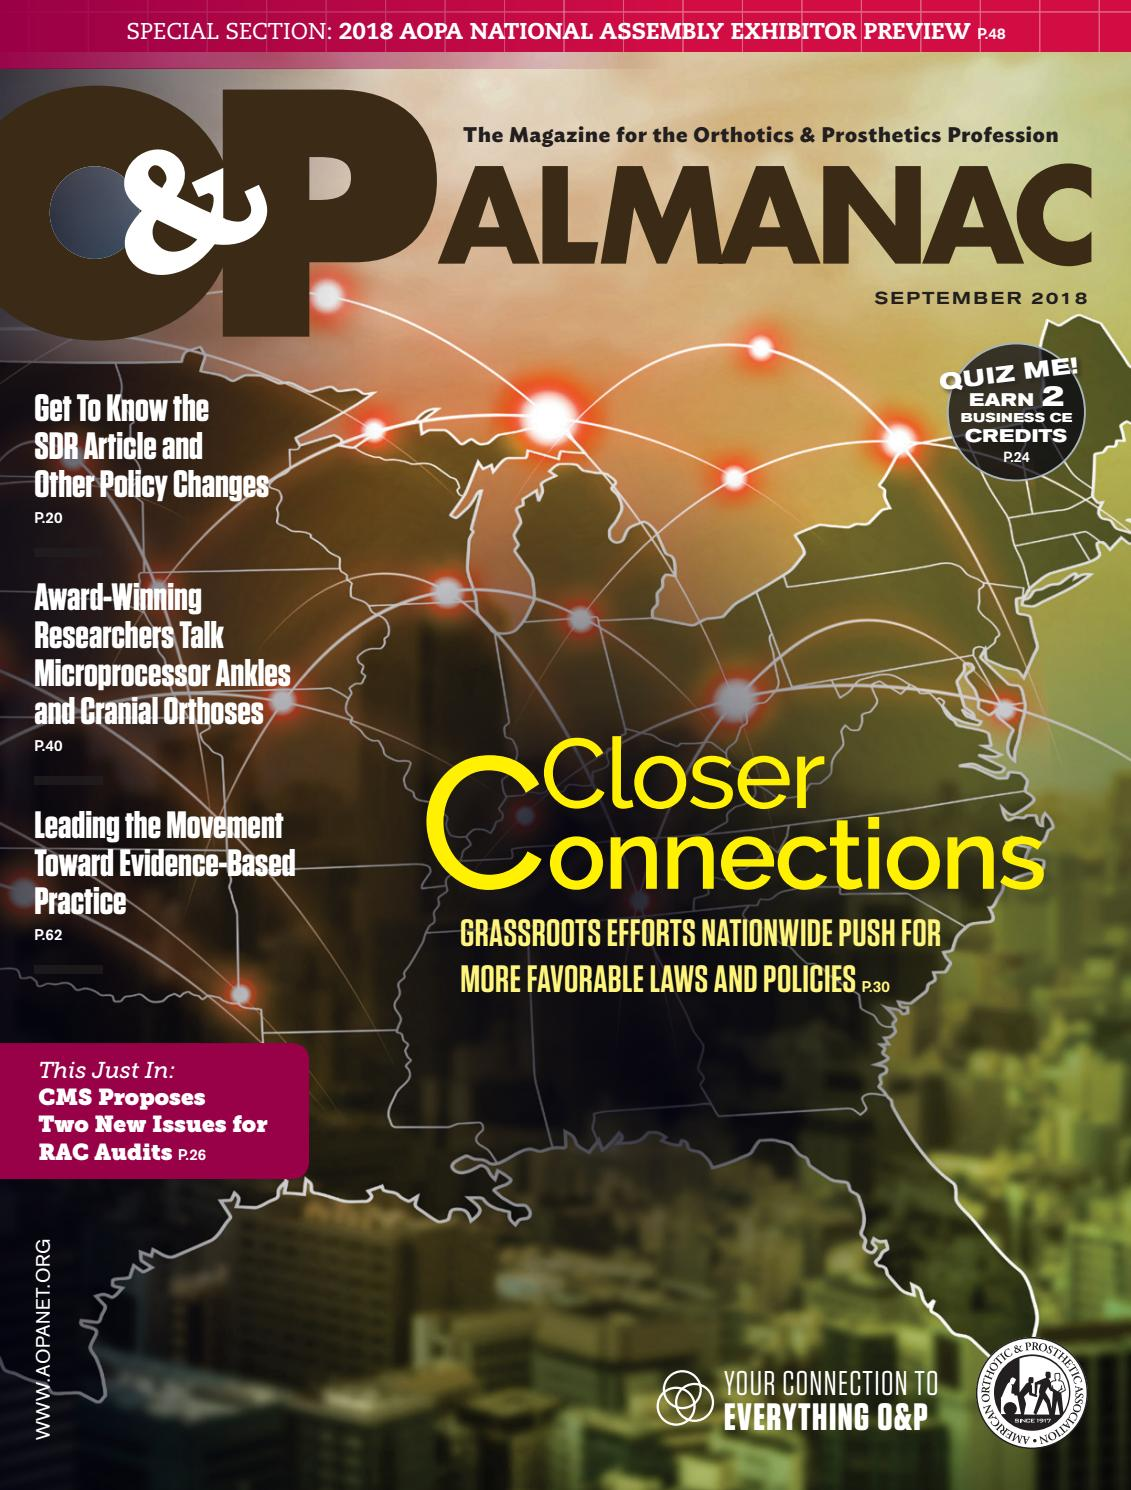 September 2018 O&P Almanac by AOPA - issuu